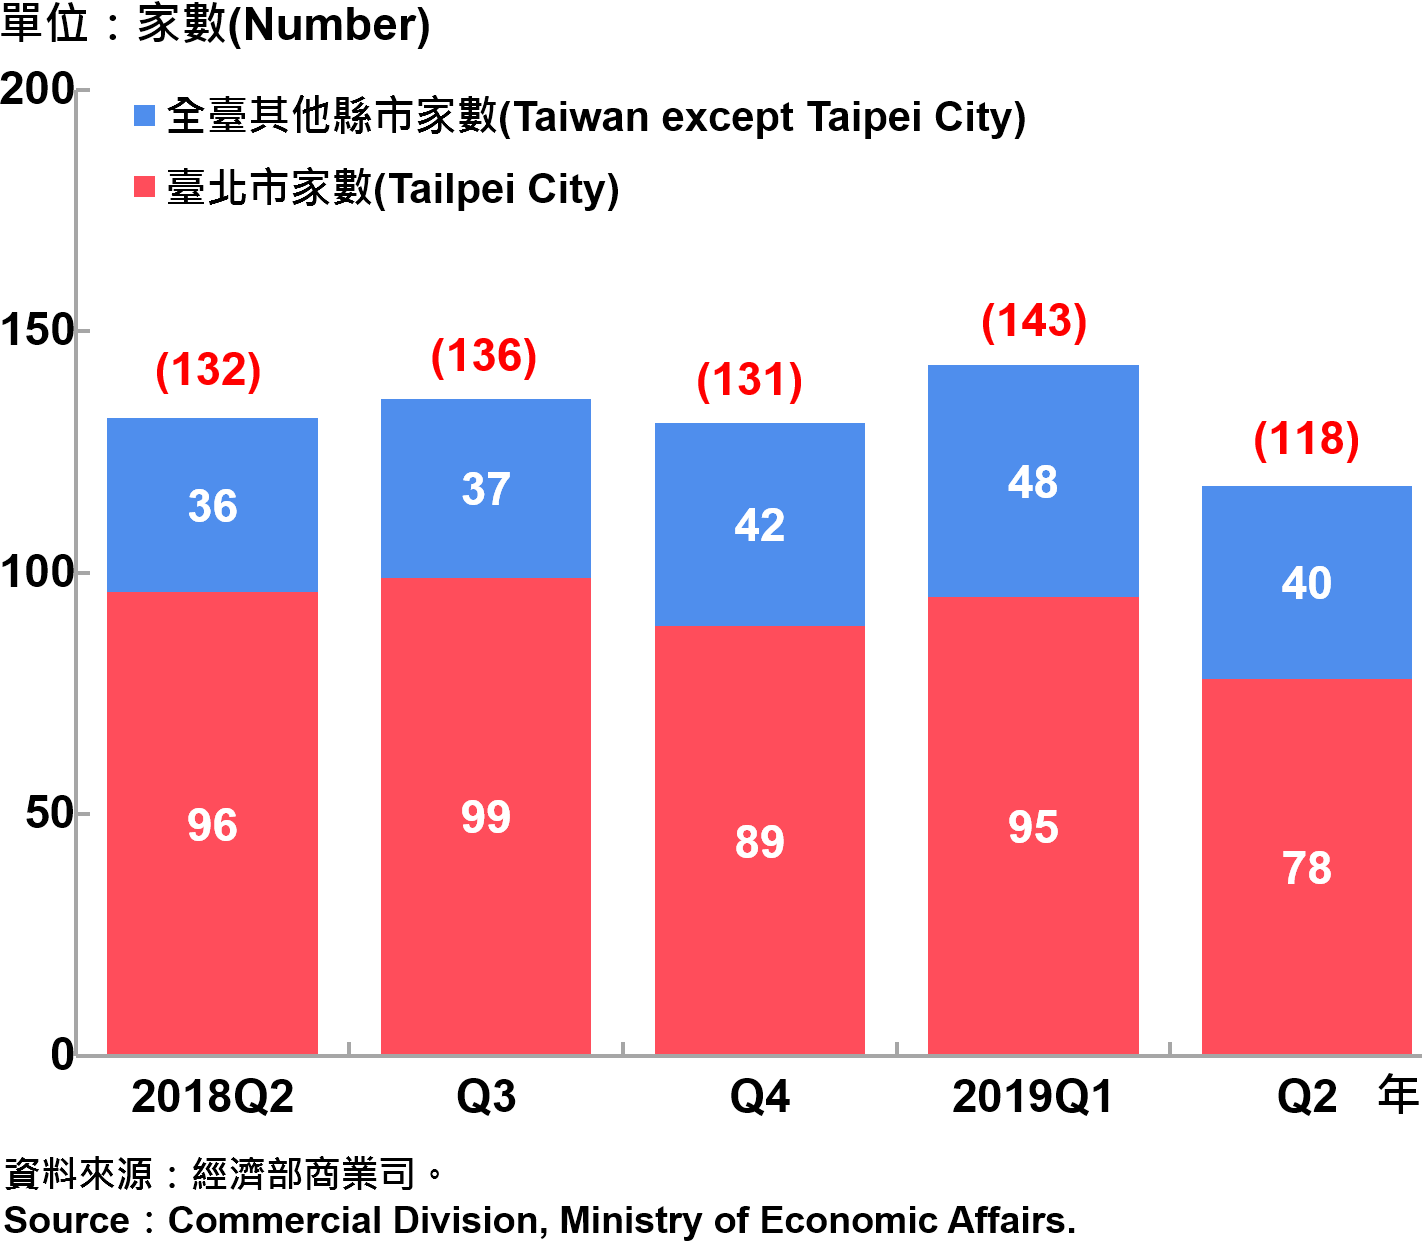 臺北市外商公司新設立家數—2019Q2 Number of Newly Established Foreign Companies in Taipei City—2019Q2